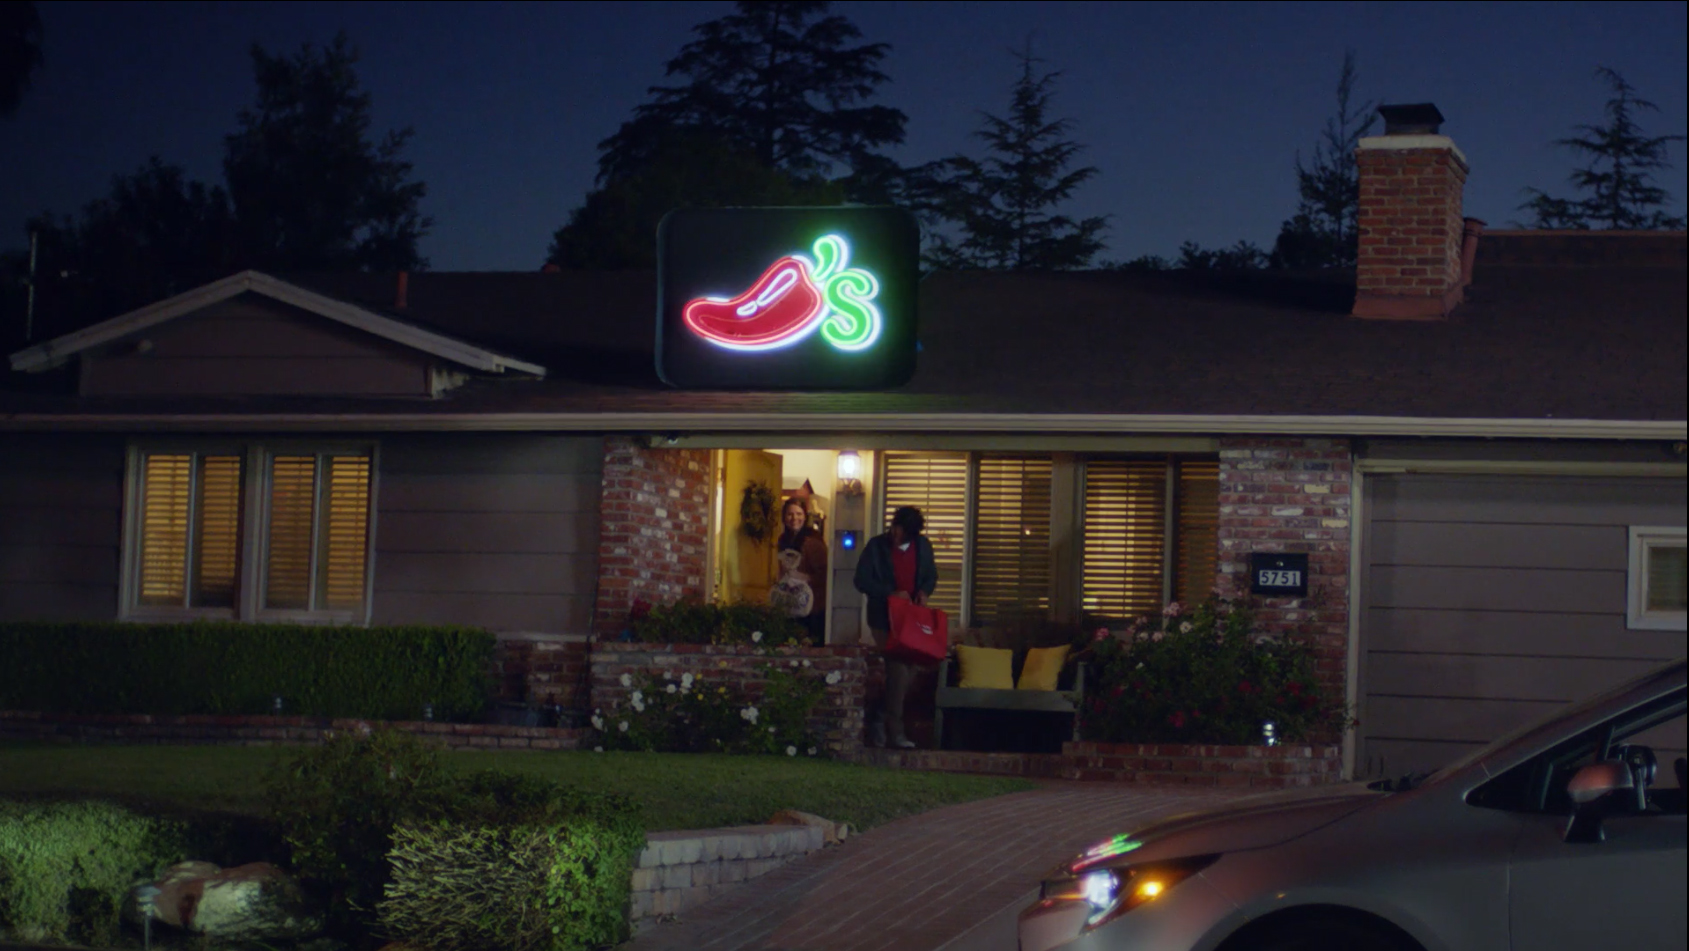 Chili's, pronounced ChilEASE, makes getting your hands on Baby Back Ribs really easy